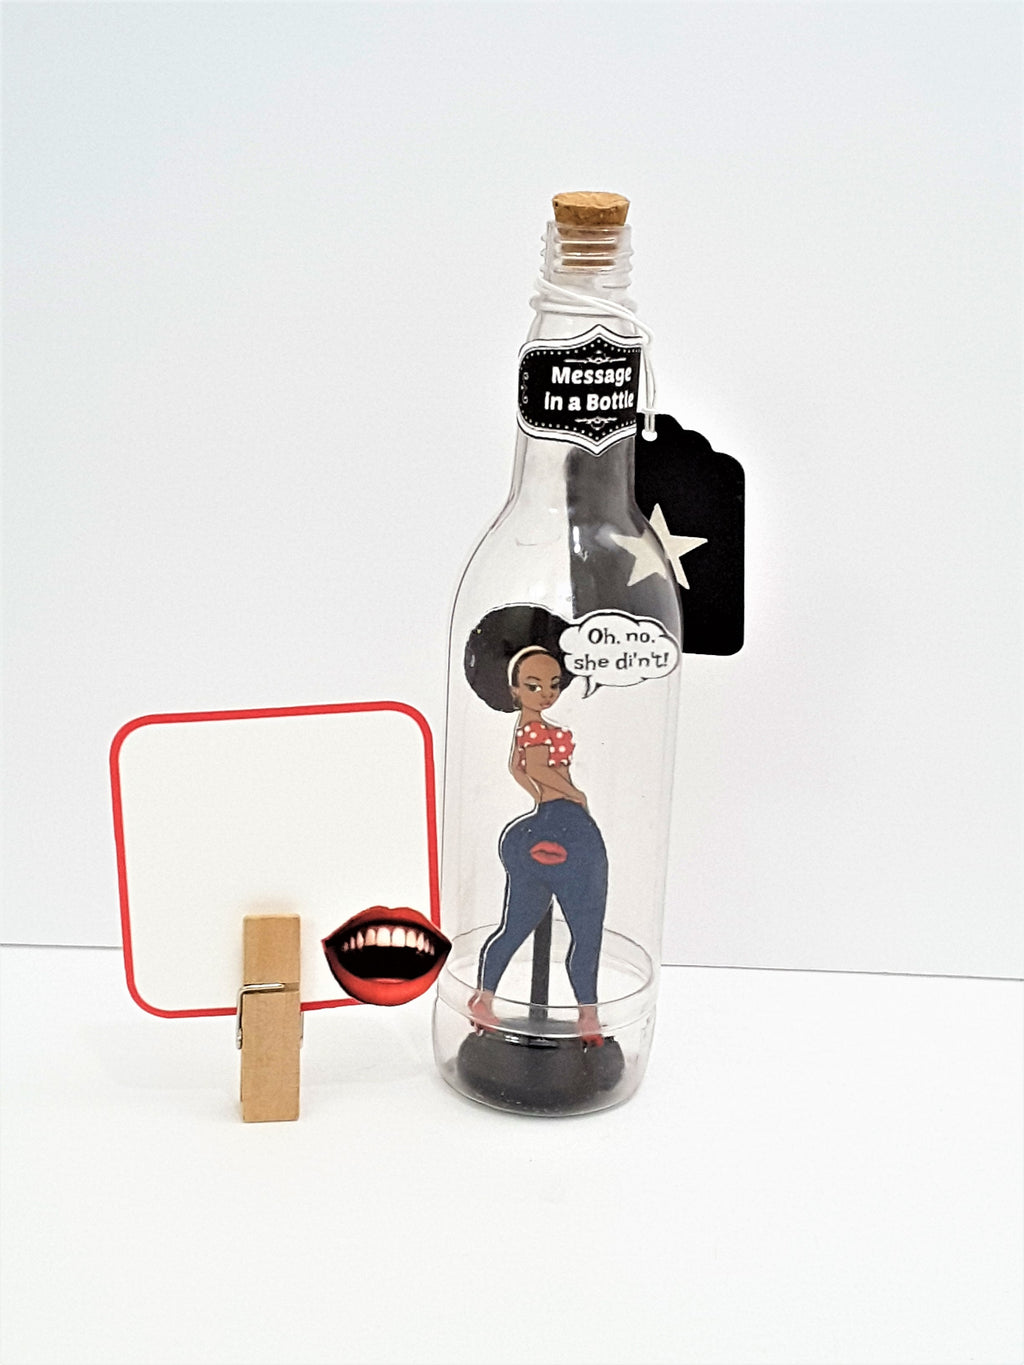 Sassy Black Girl Message in a Bottle